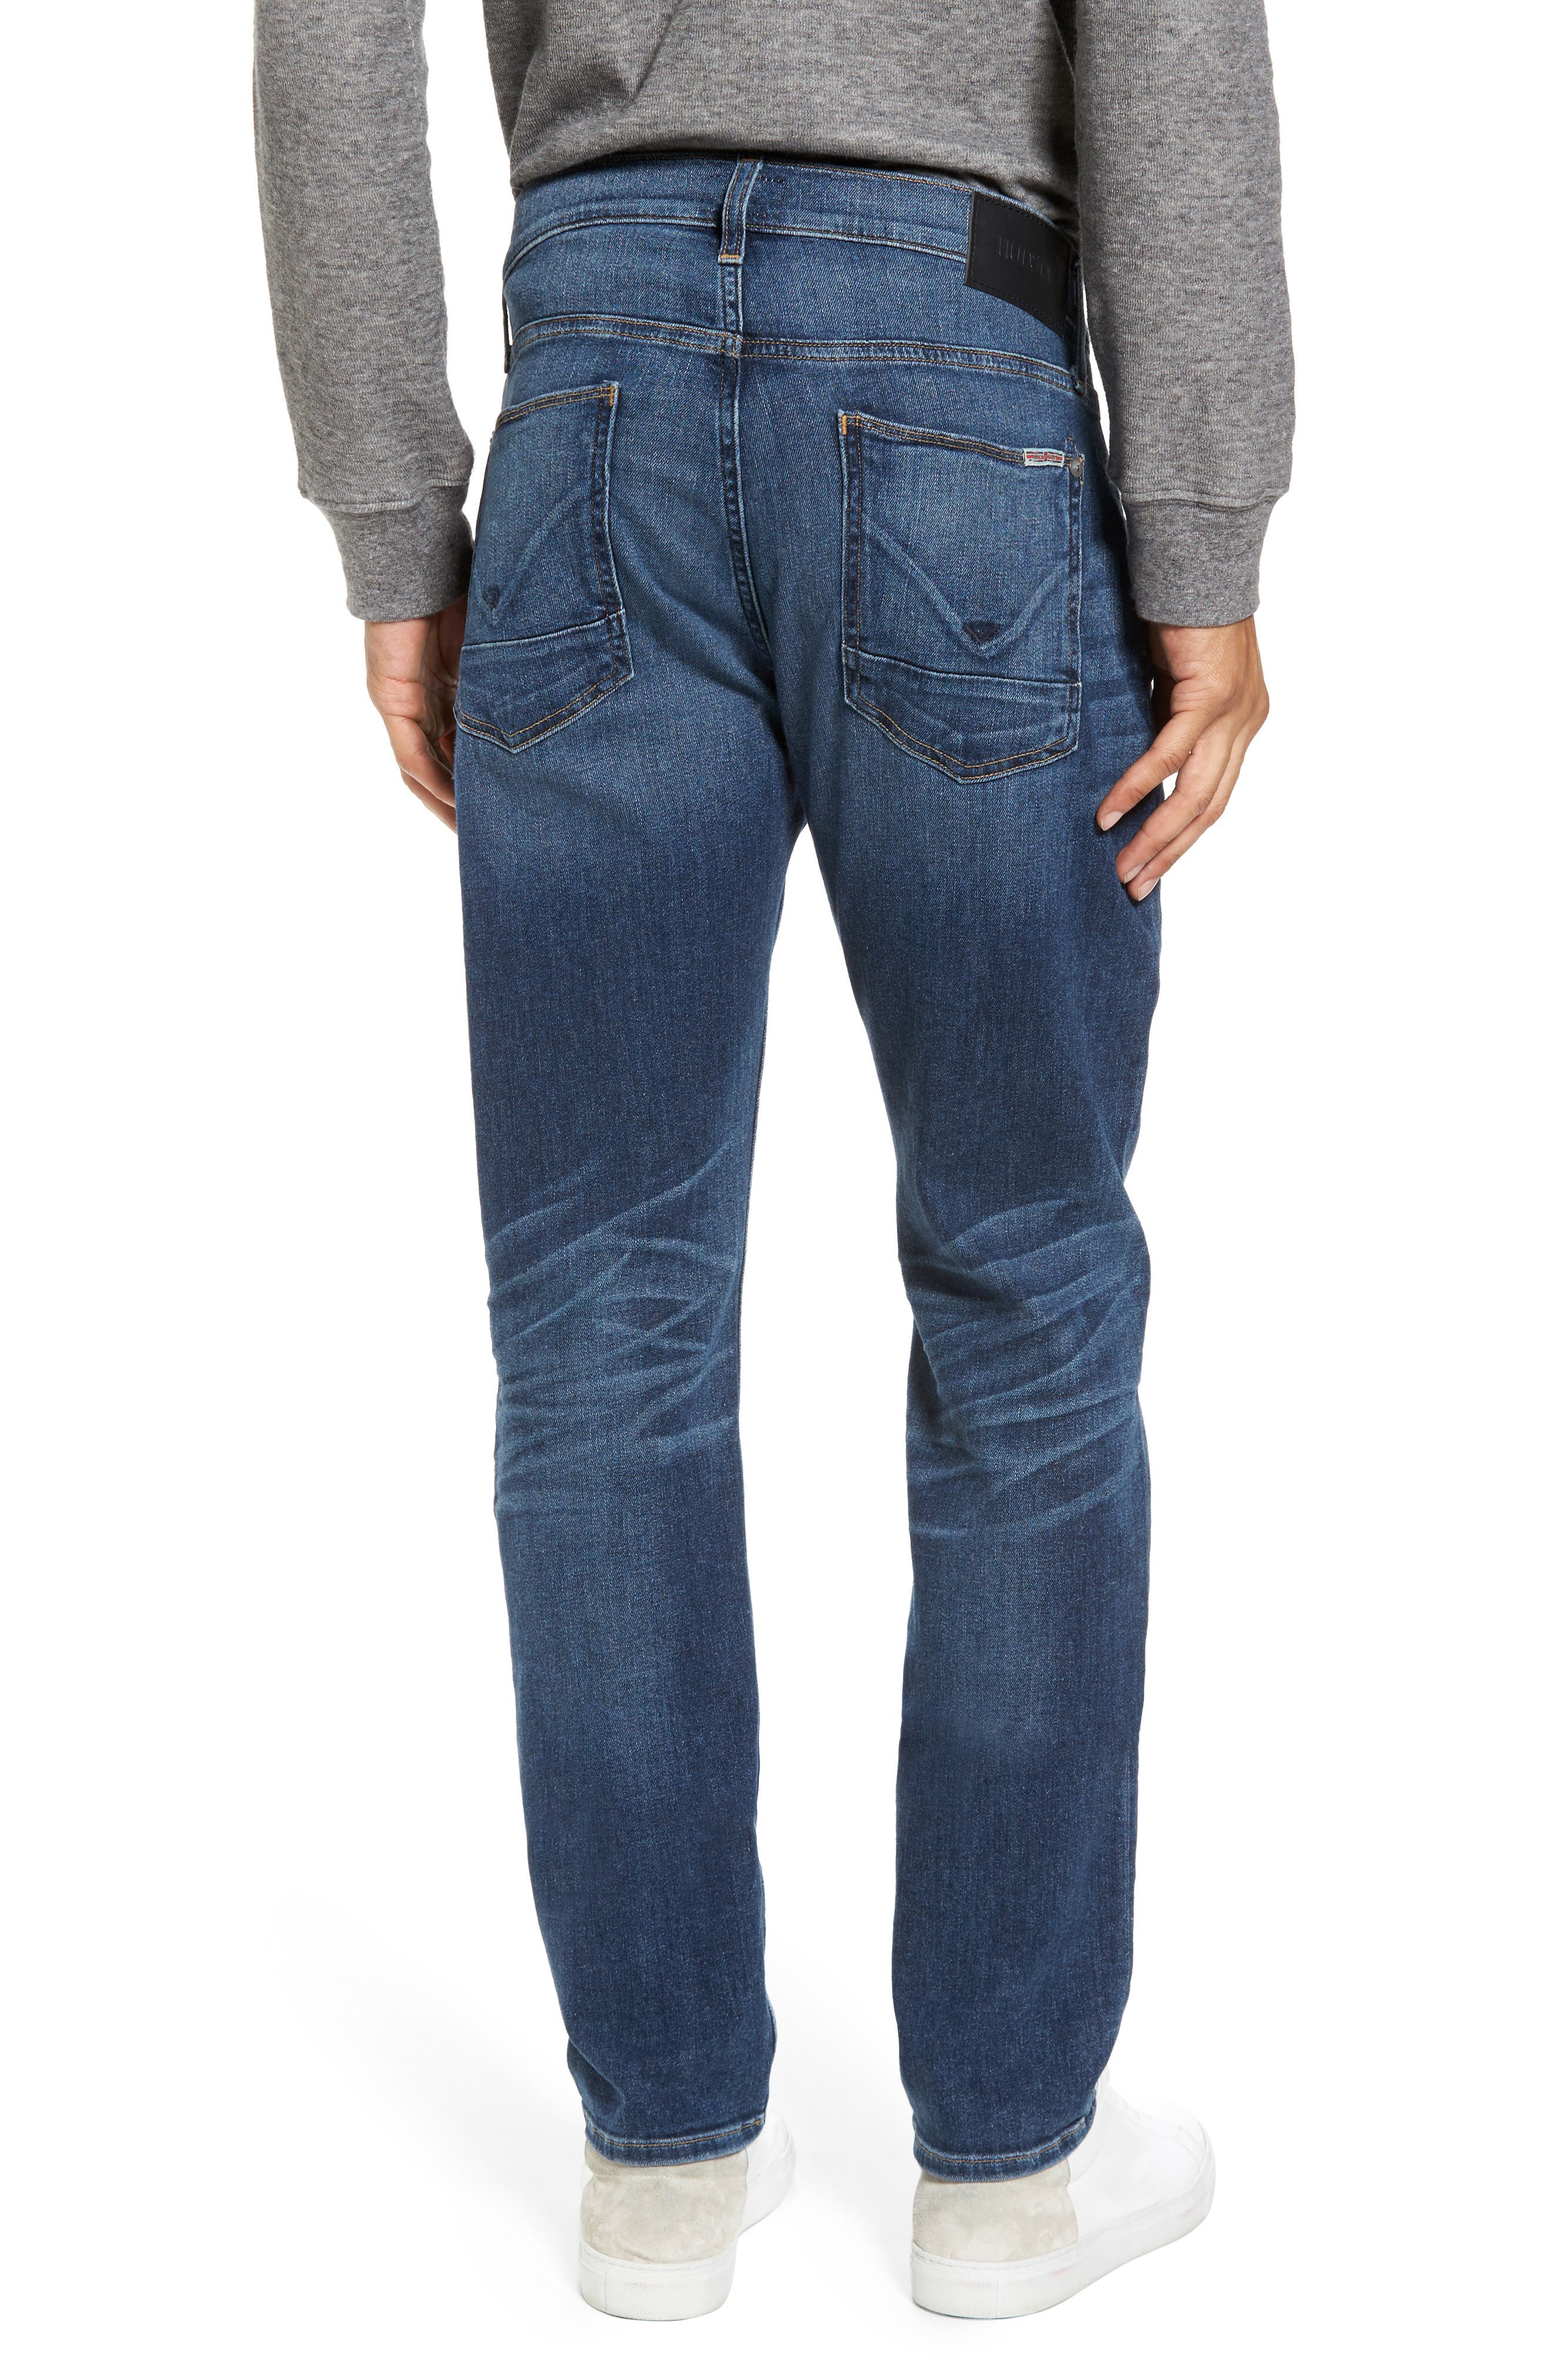 Blake Slim Fit Jeans,                             Alternate thumbnail 2, color,                             420